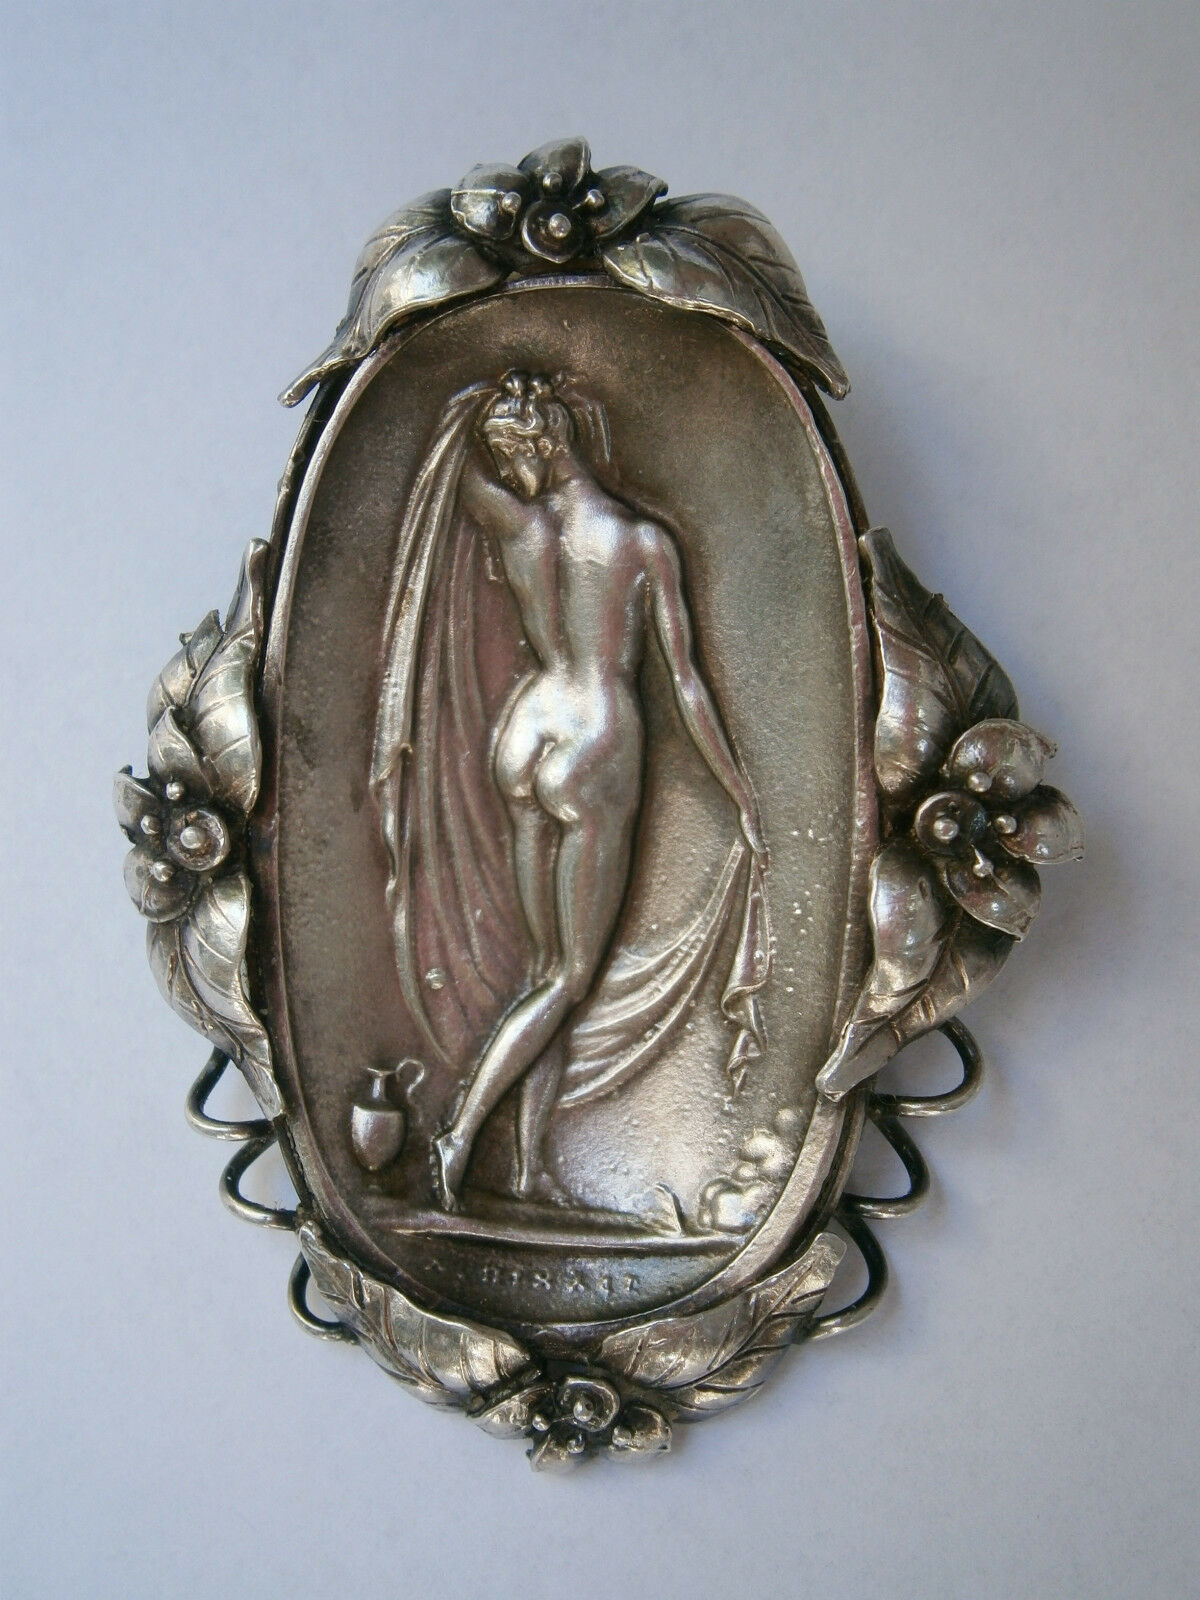 VINTAGE OLD HAND MADE SOLID SILVER 26,3gr. BROOCH PIN NUDE EROTIC LADY ORNATE